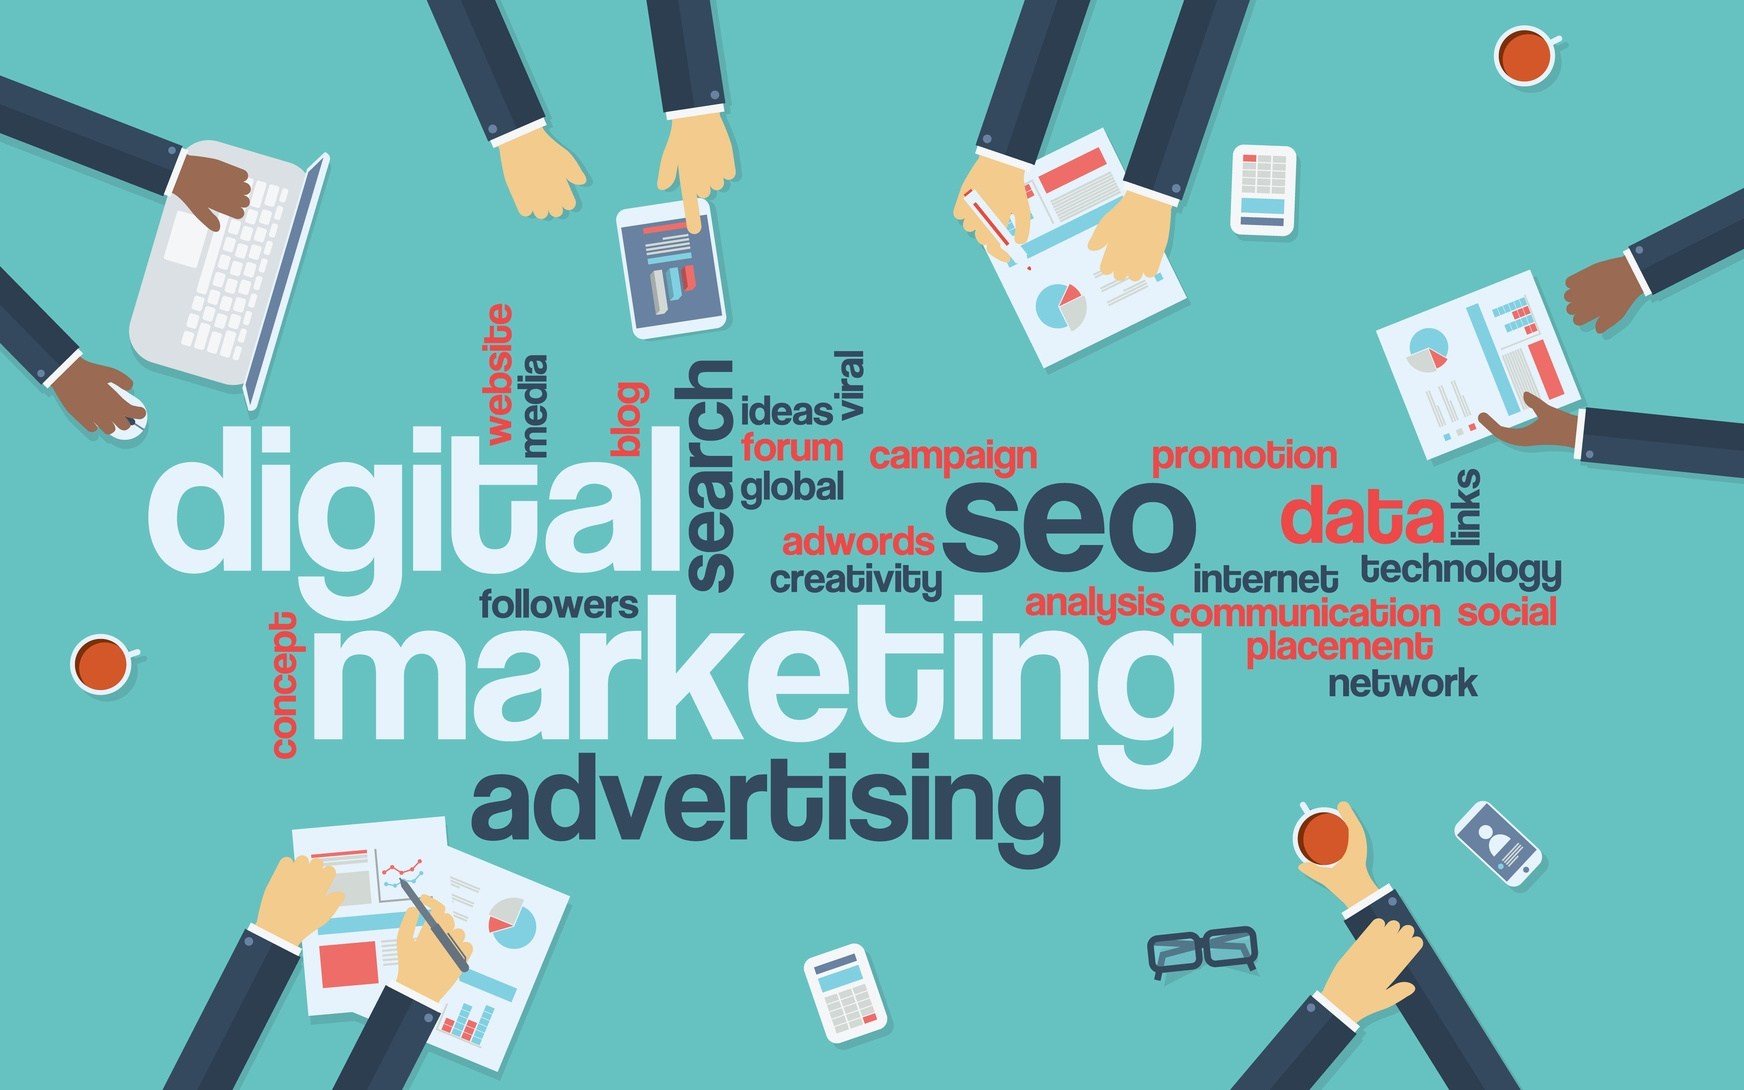 7 tendências do marketing digital para 2018